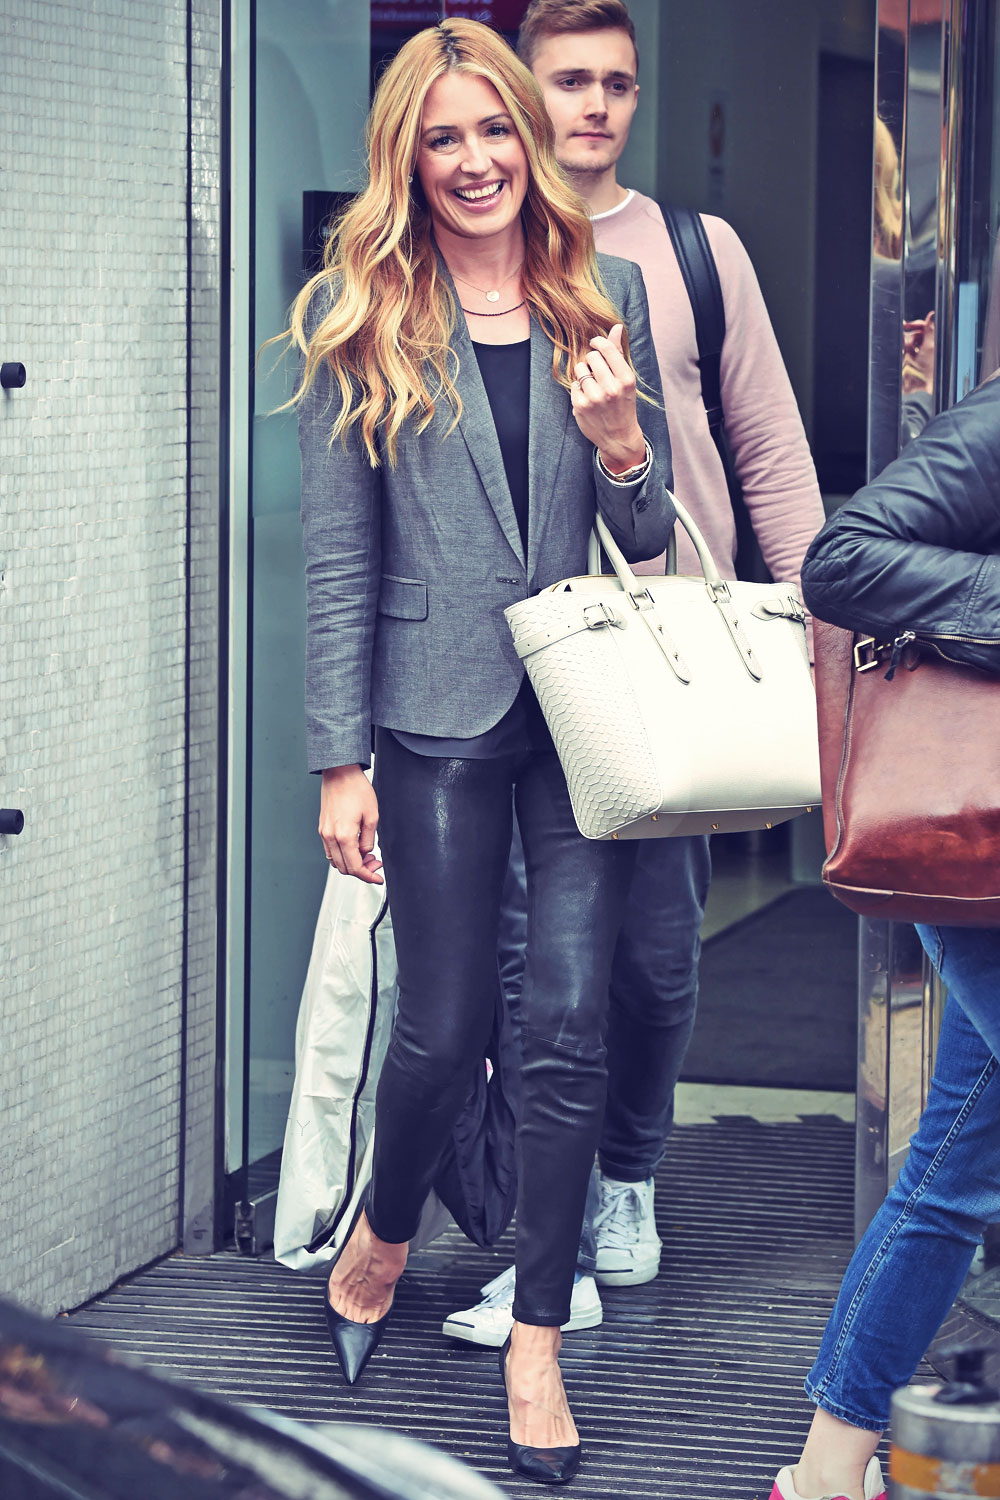 Cat Deeley leaving the ITV studios